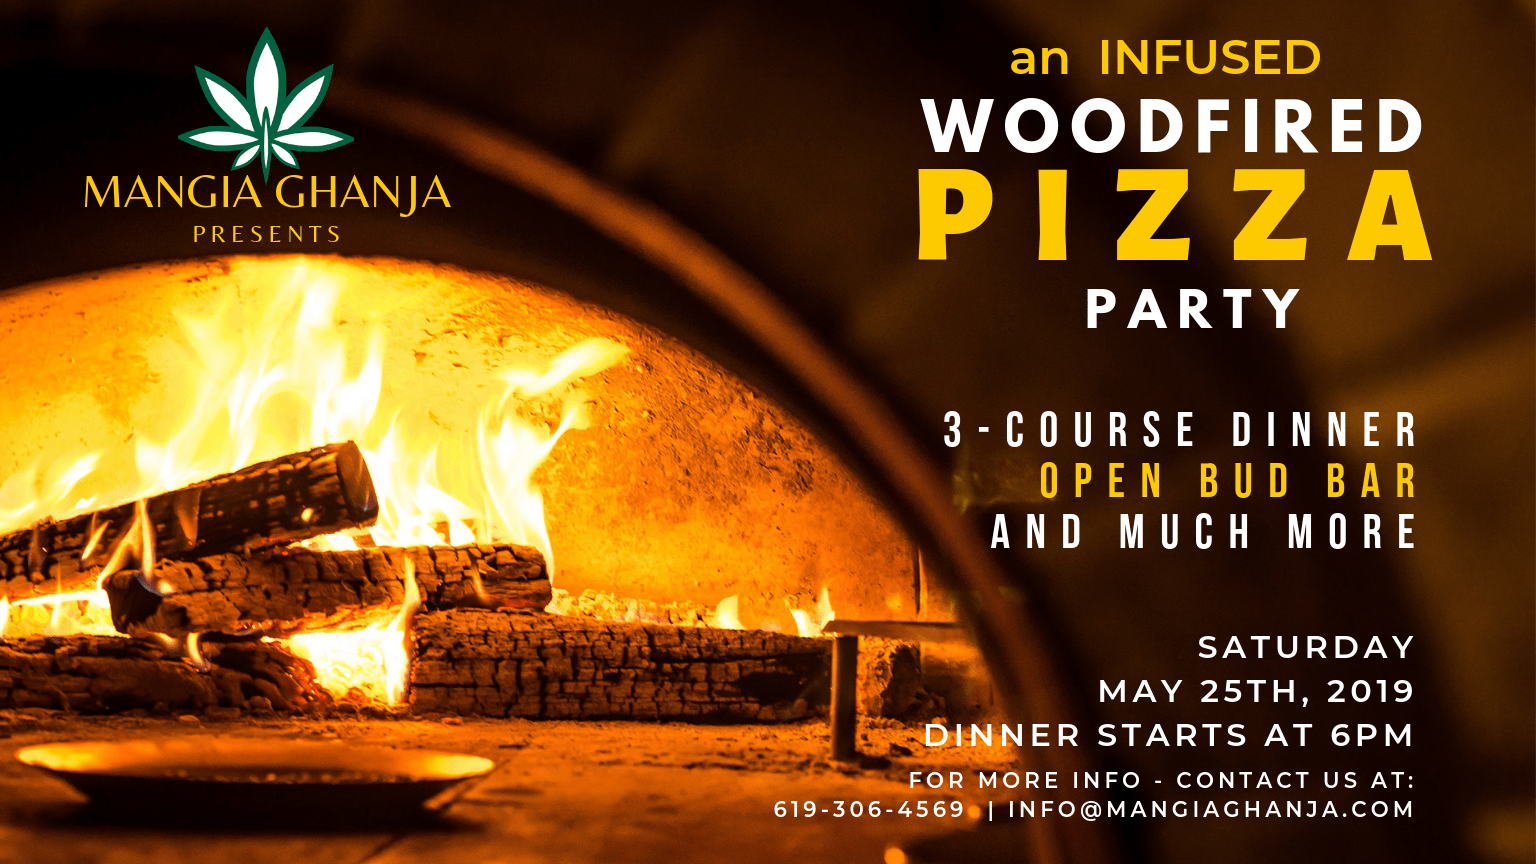 Mangia Ghanja - Woodfired Pizza Party